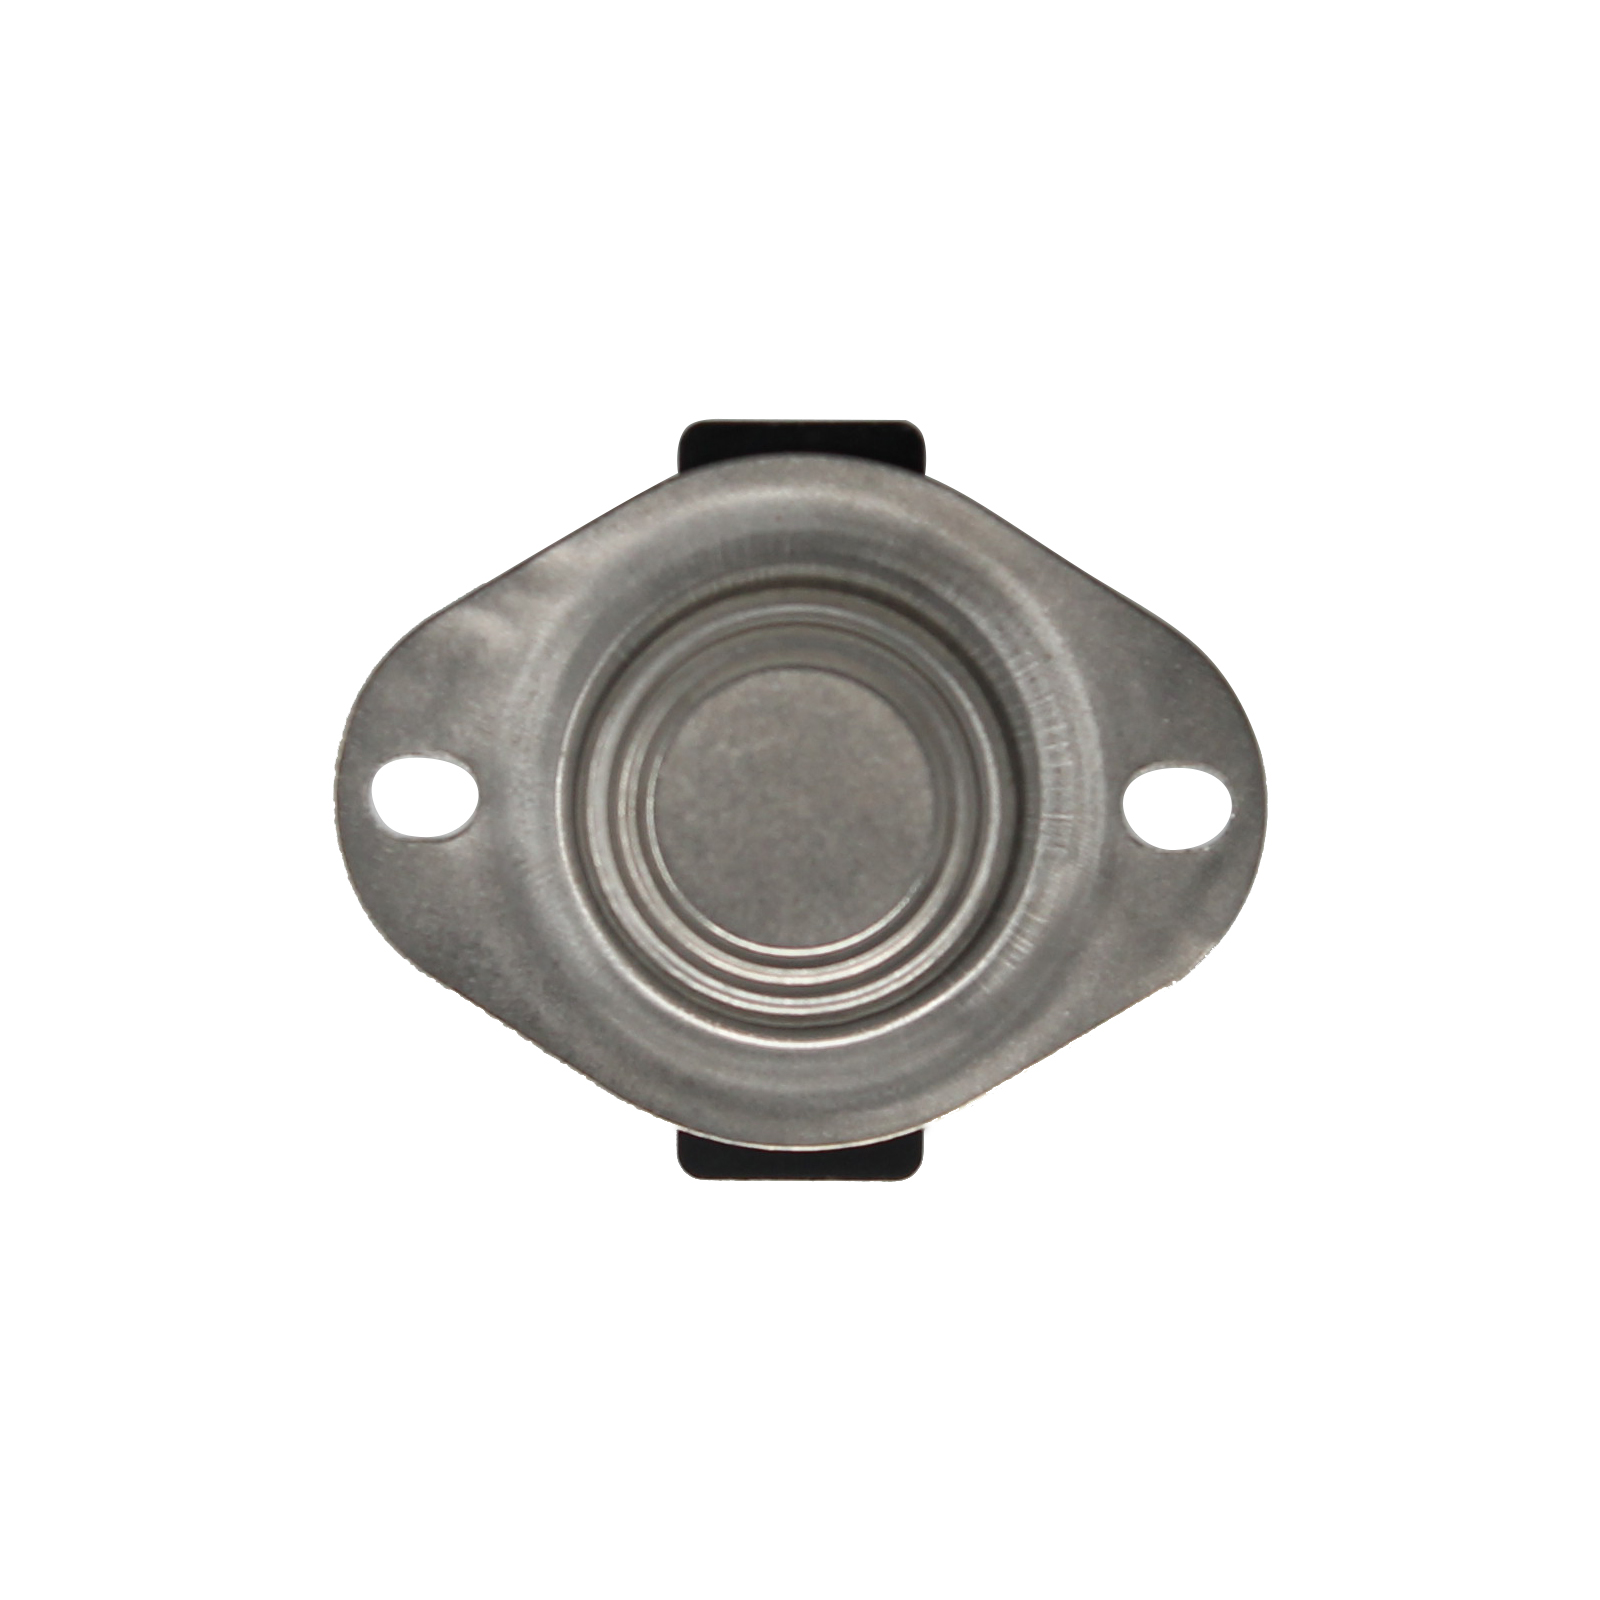 Replacement Fixed Thermostat 3387134, WP3387134, 2011, 306910, 3387135, 3387139, WP3387134VP for Kenmore 11097582100 Dryer - image 2 de 4